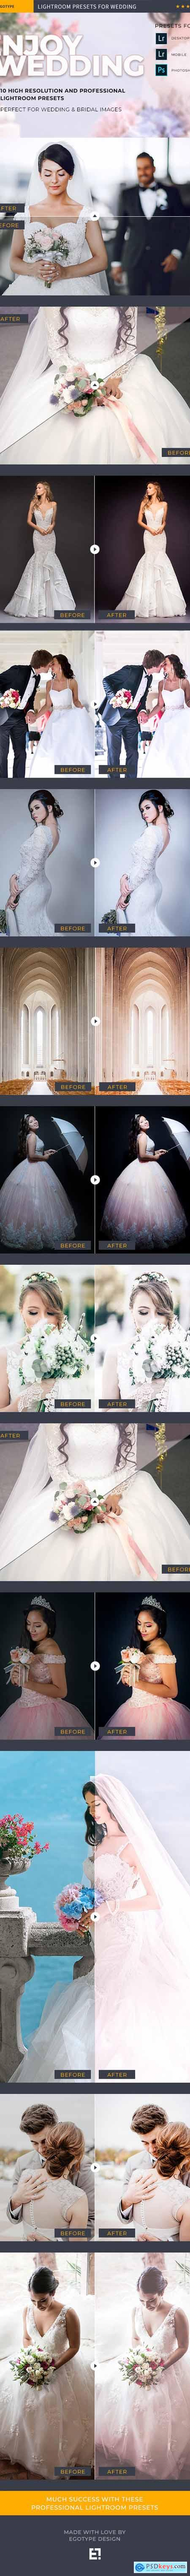 Premium Wedding Lightroom Presets 24318037